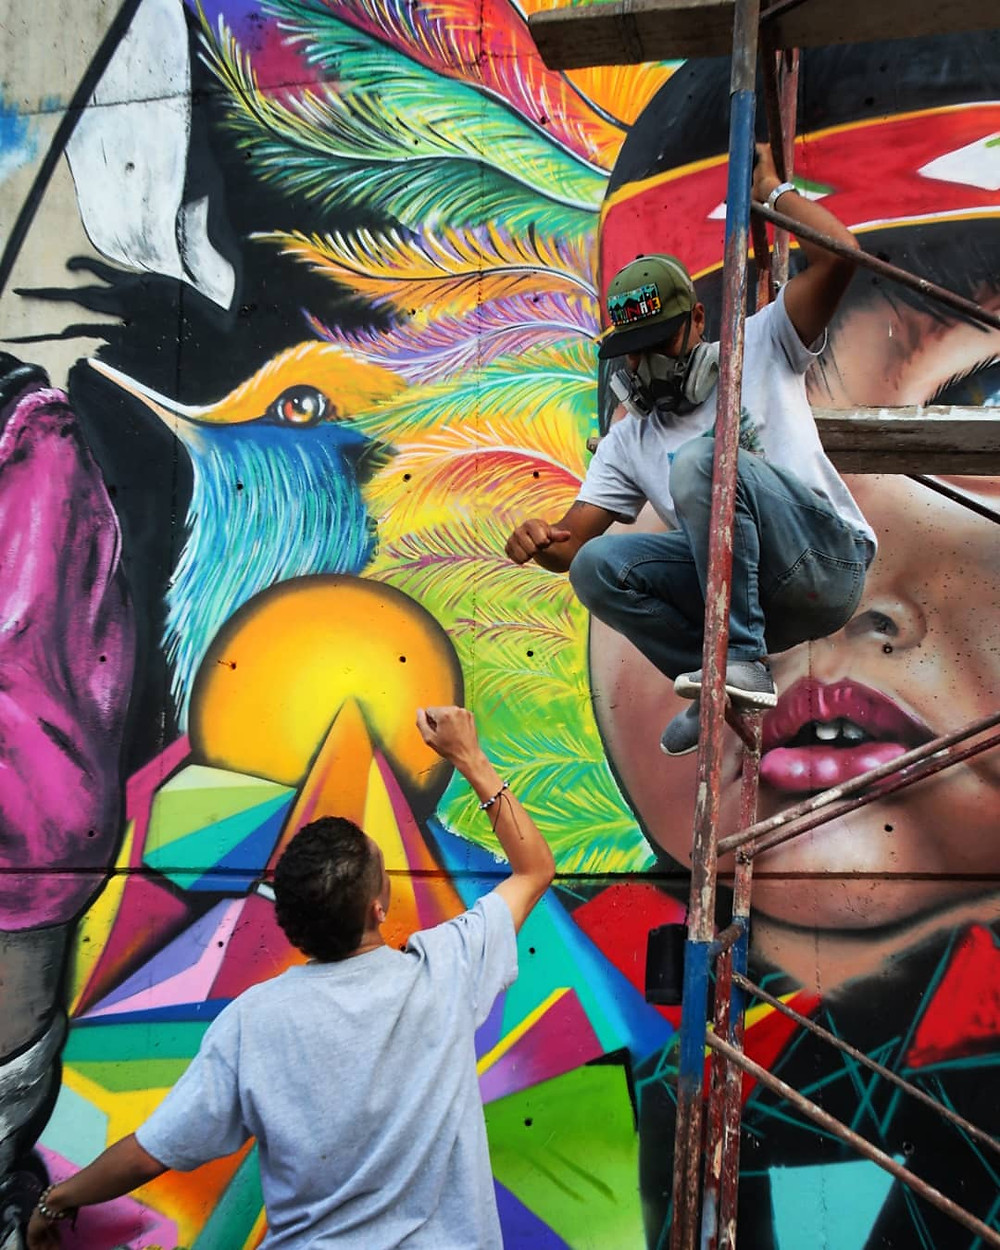 Man gives his friend a high five while creating a graffiti mural in Comuna 13 in Medellín, Colombia.